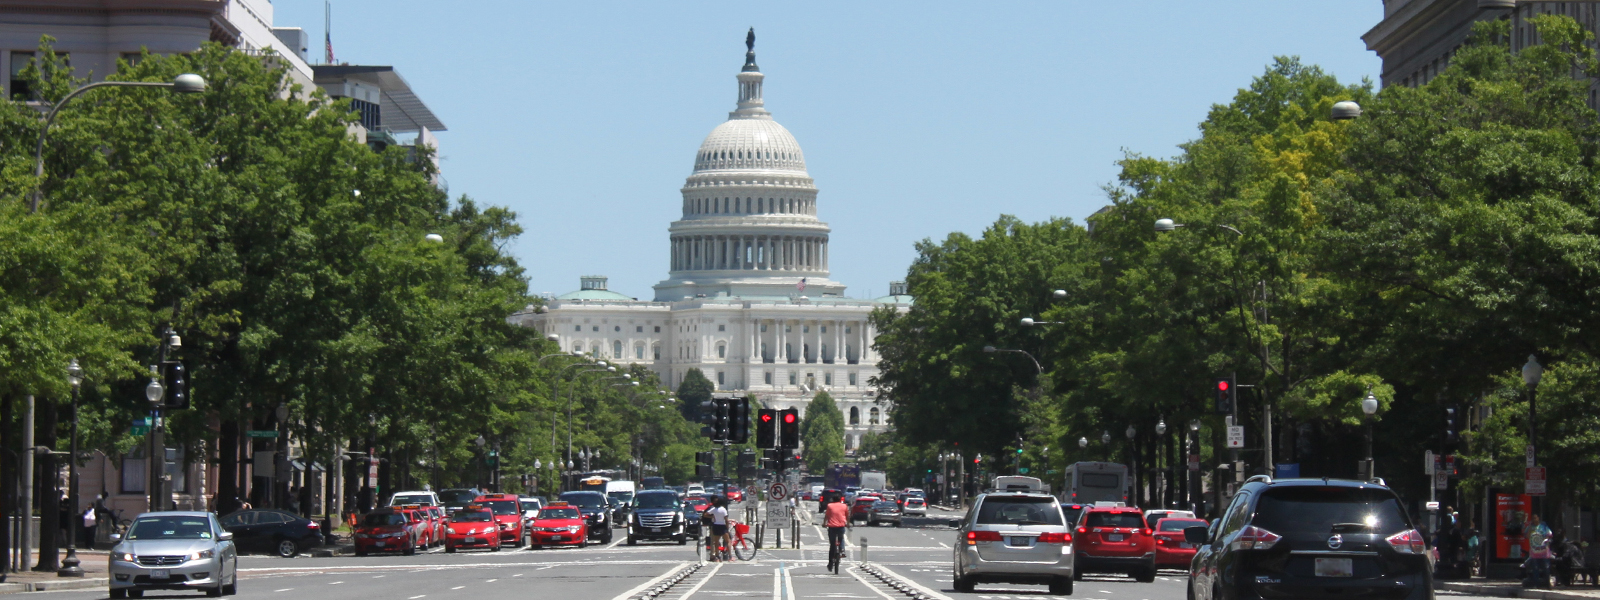 United States Capitol in Washington, DC